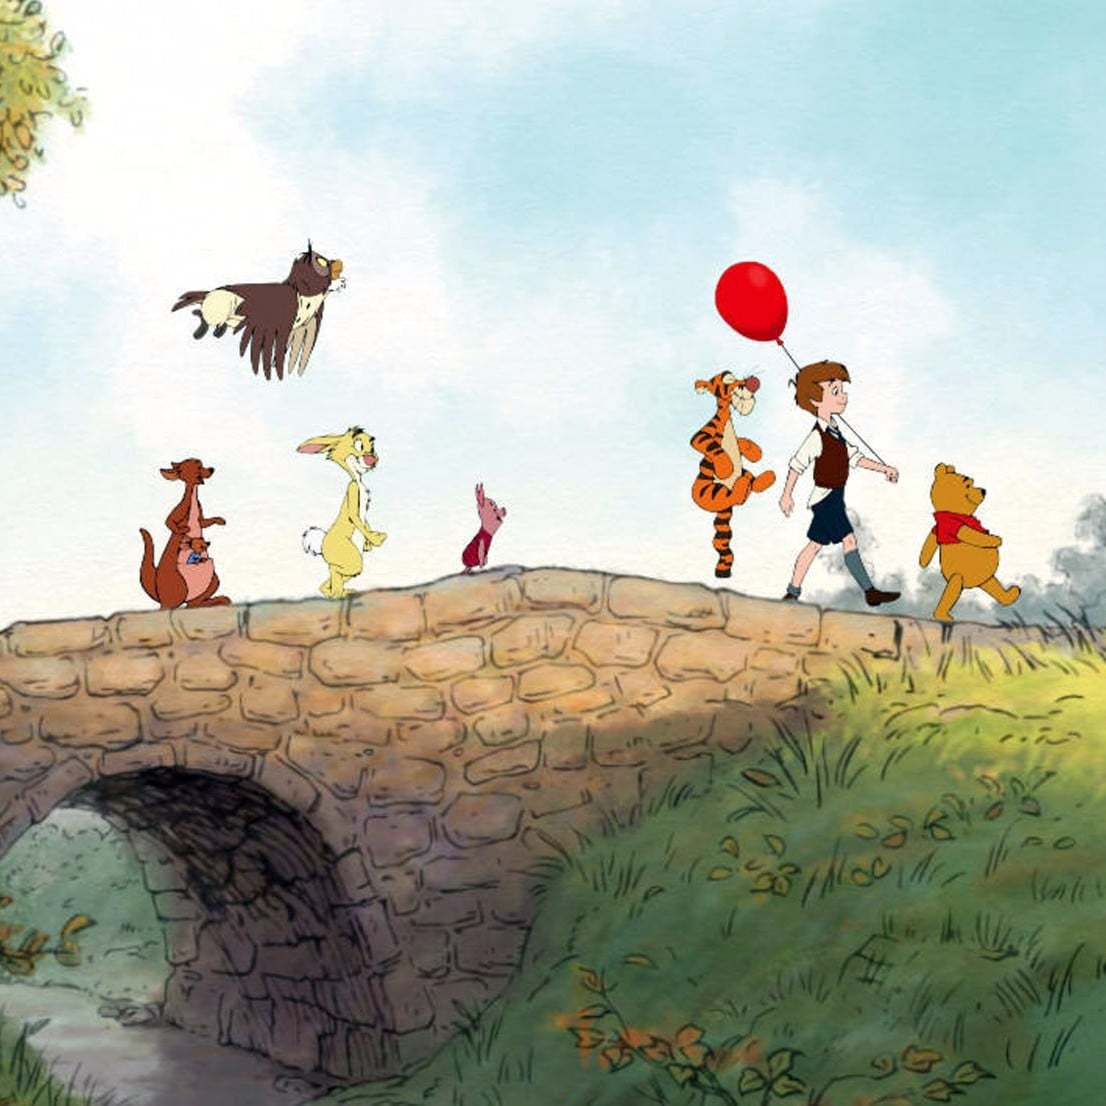 Best Winnie the Pooh Quotes | POPSUGAR Australia Smart Living